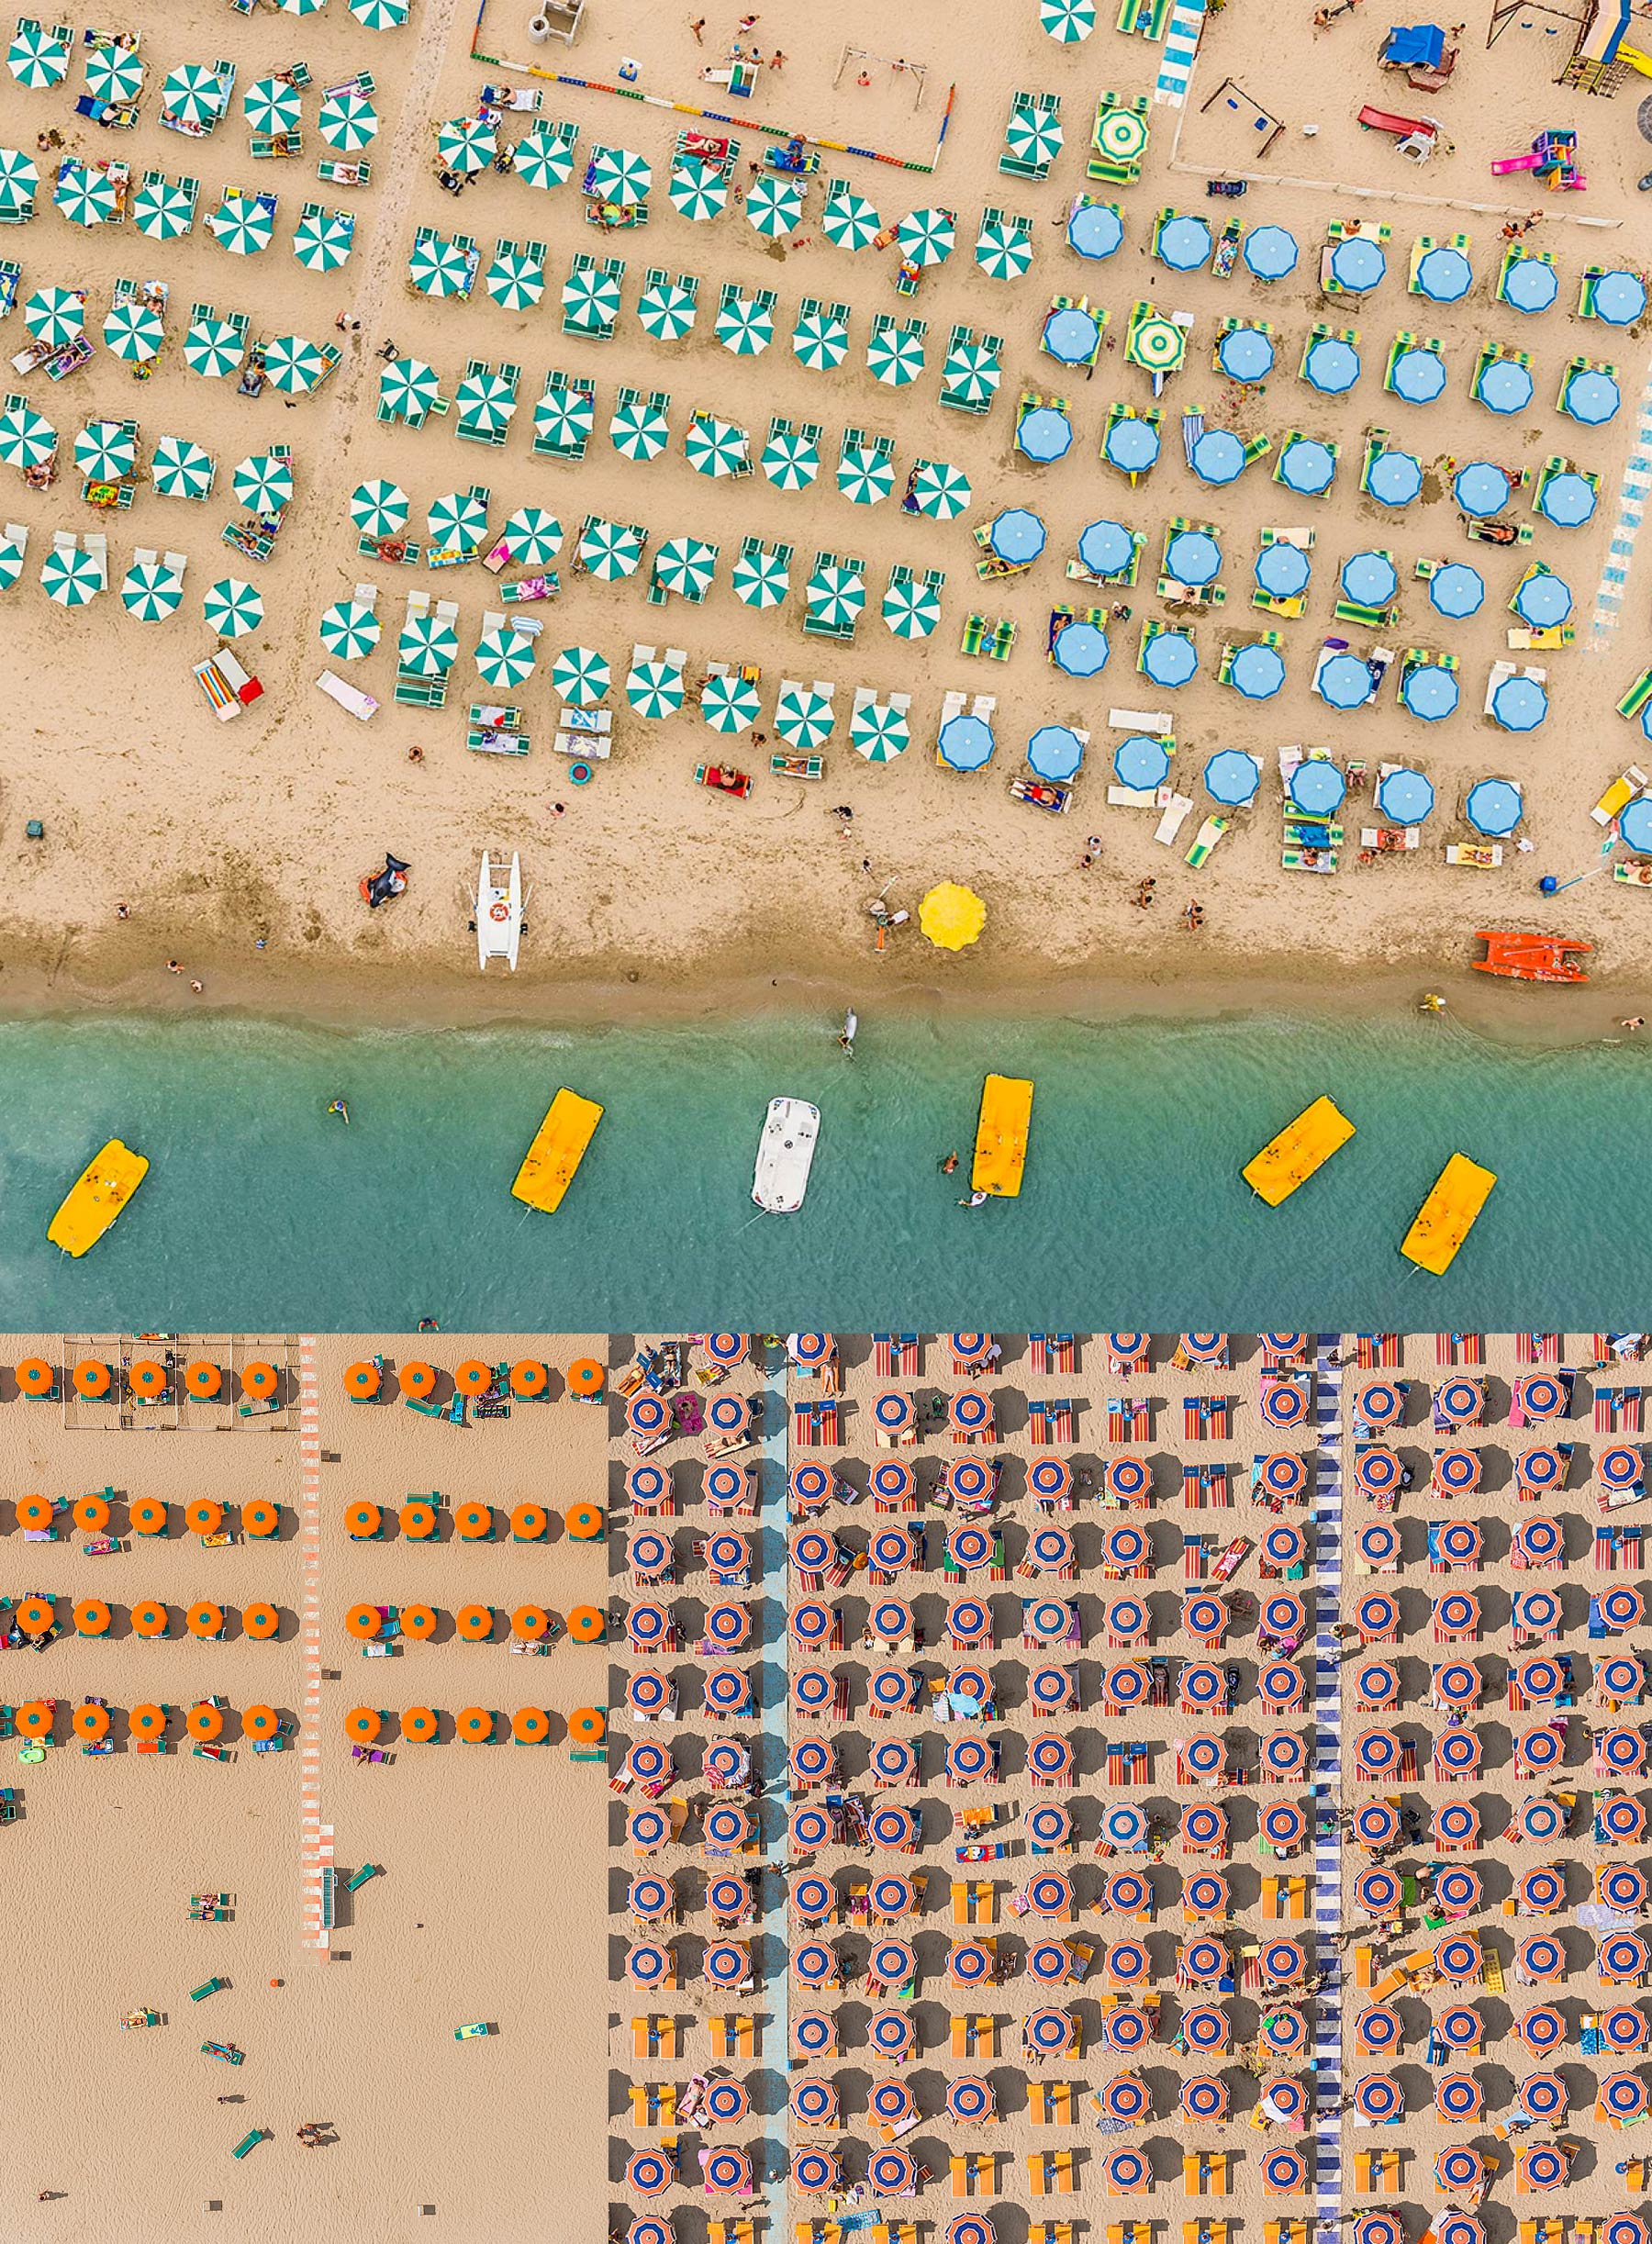 3 air photographs of packed beaches with well arranged parasols